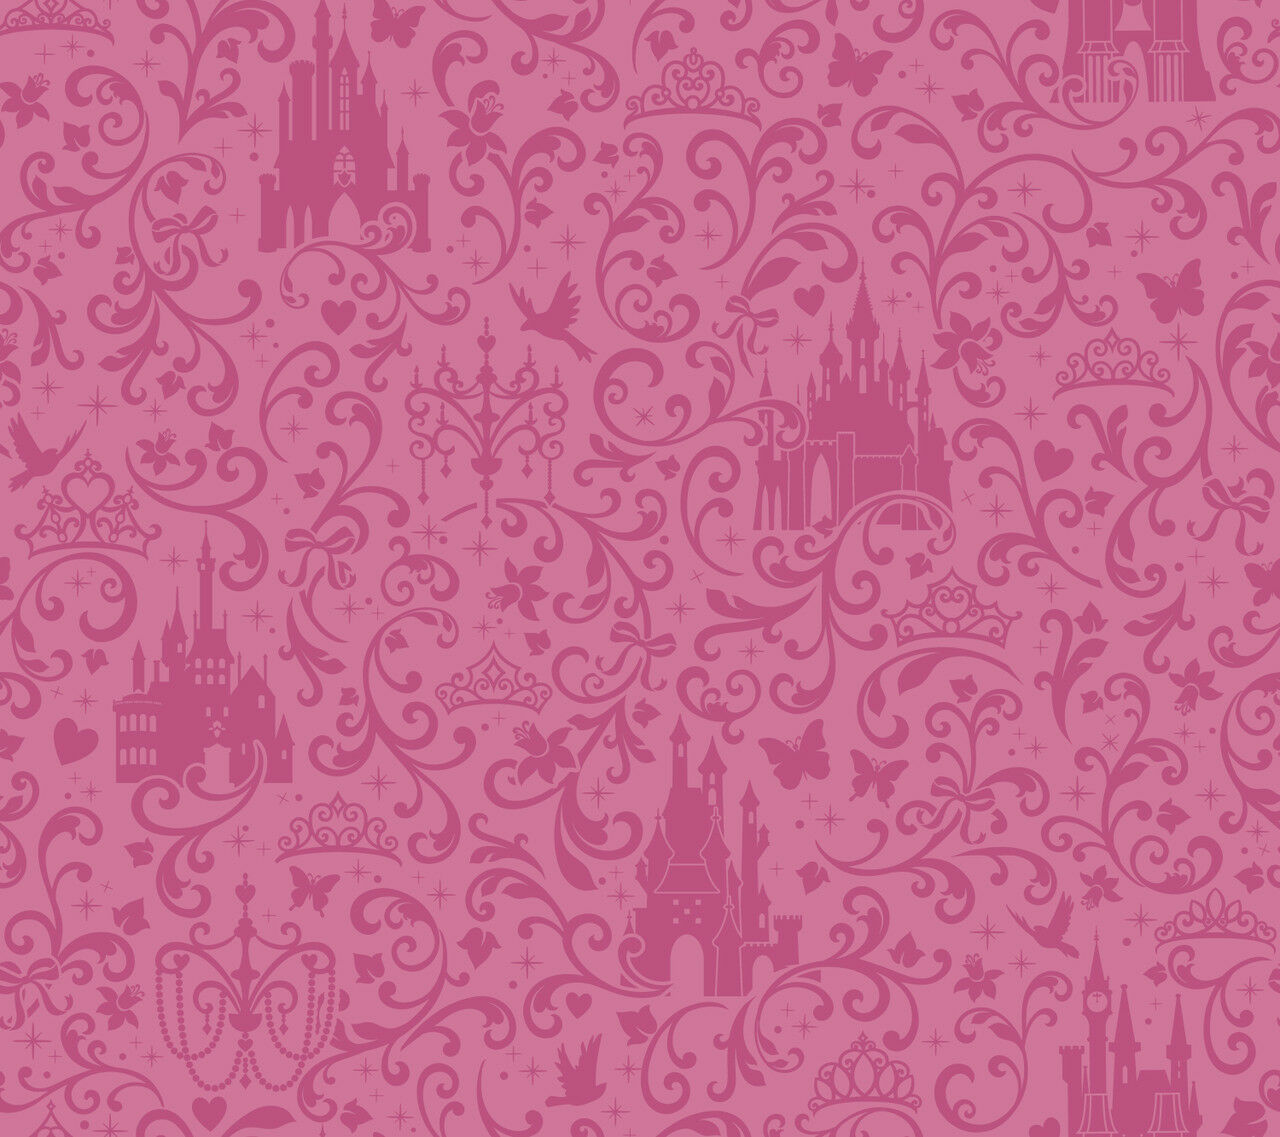 Pucker Up Pink Kissable Lips On Pink Sure Strip Wallpaper Ru8183